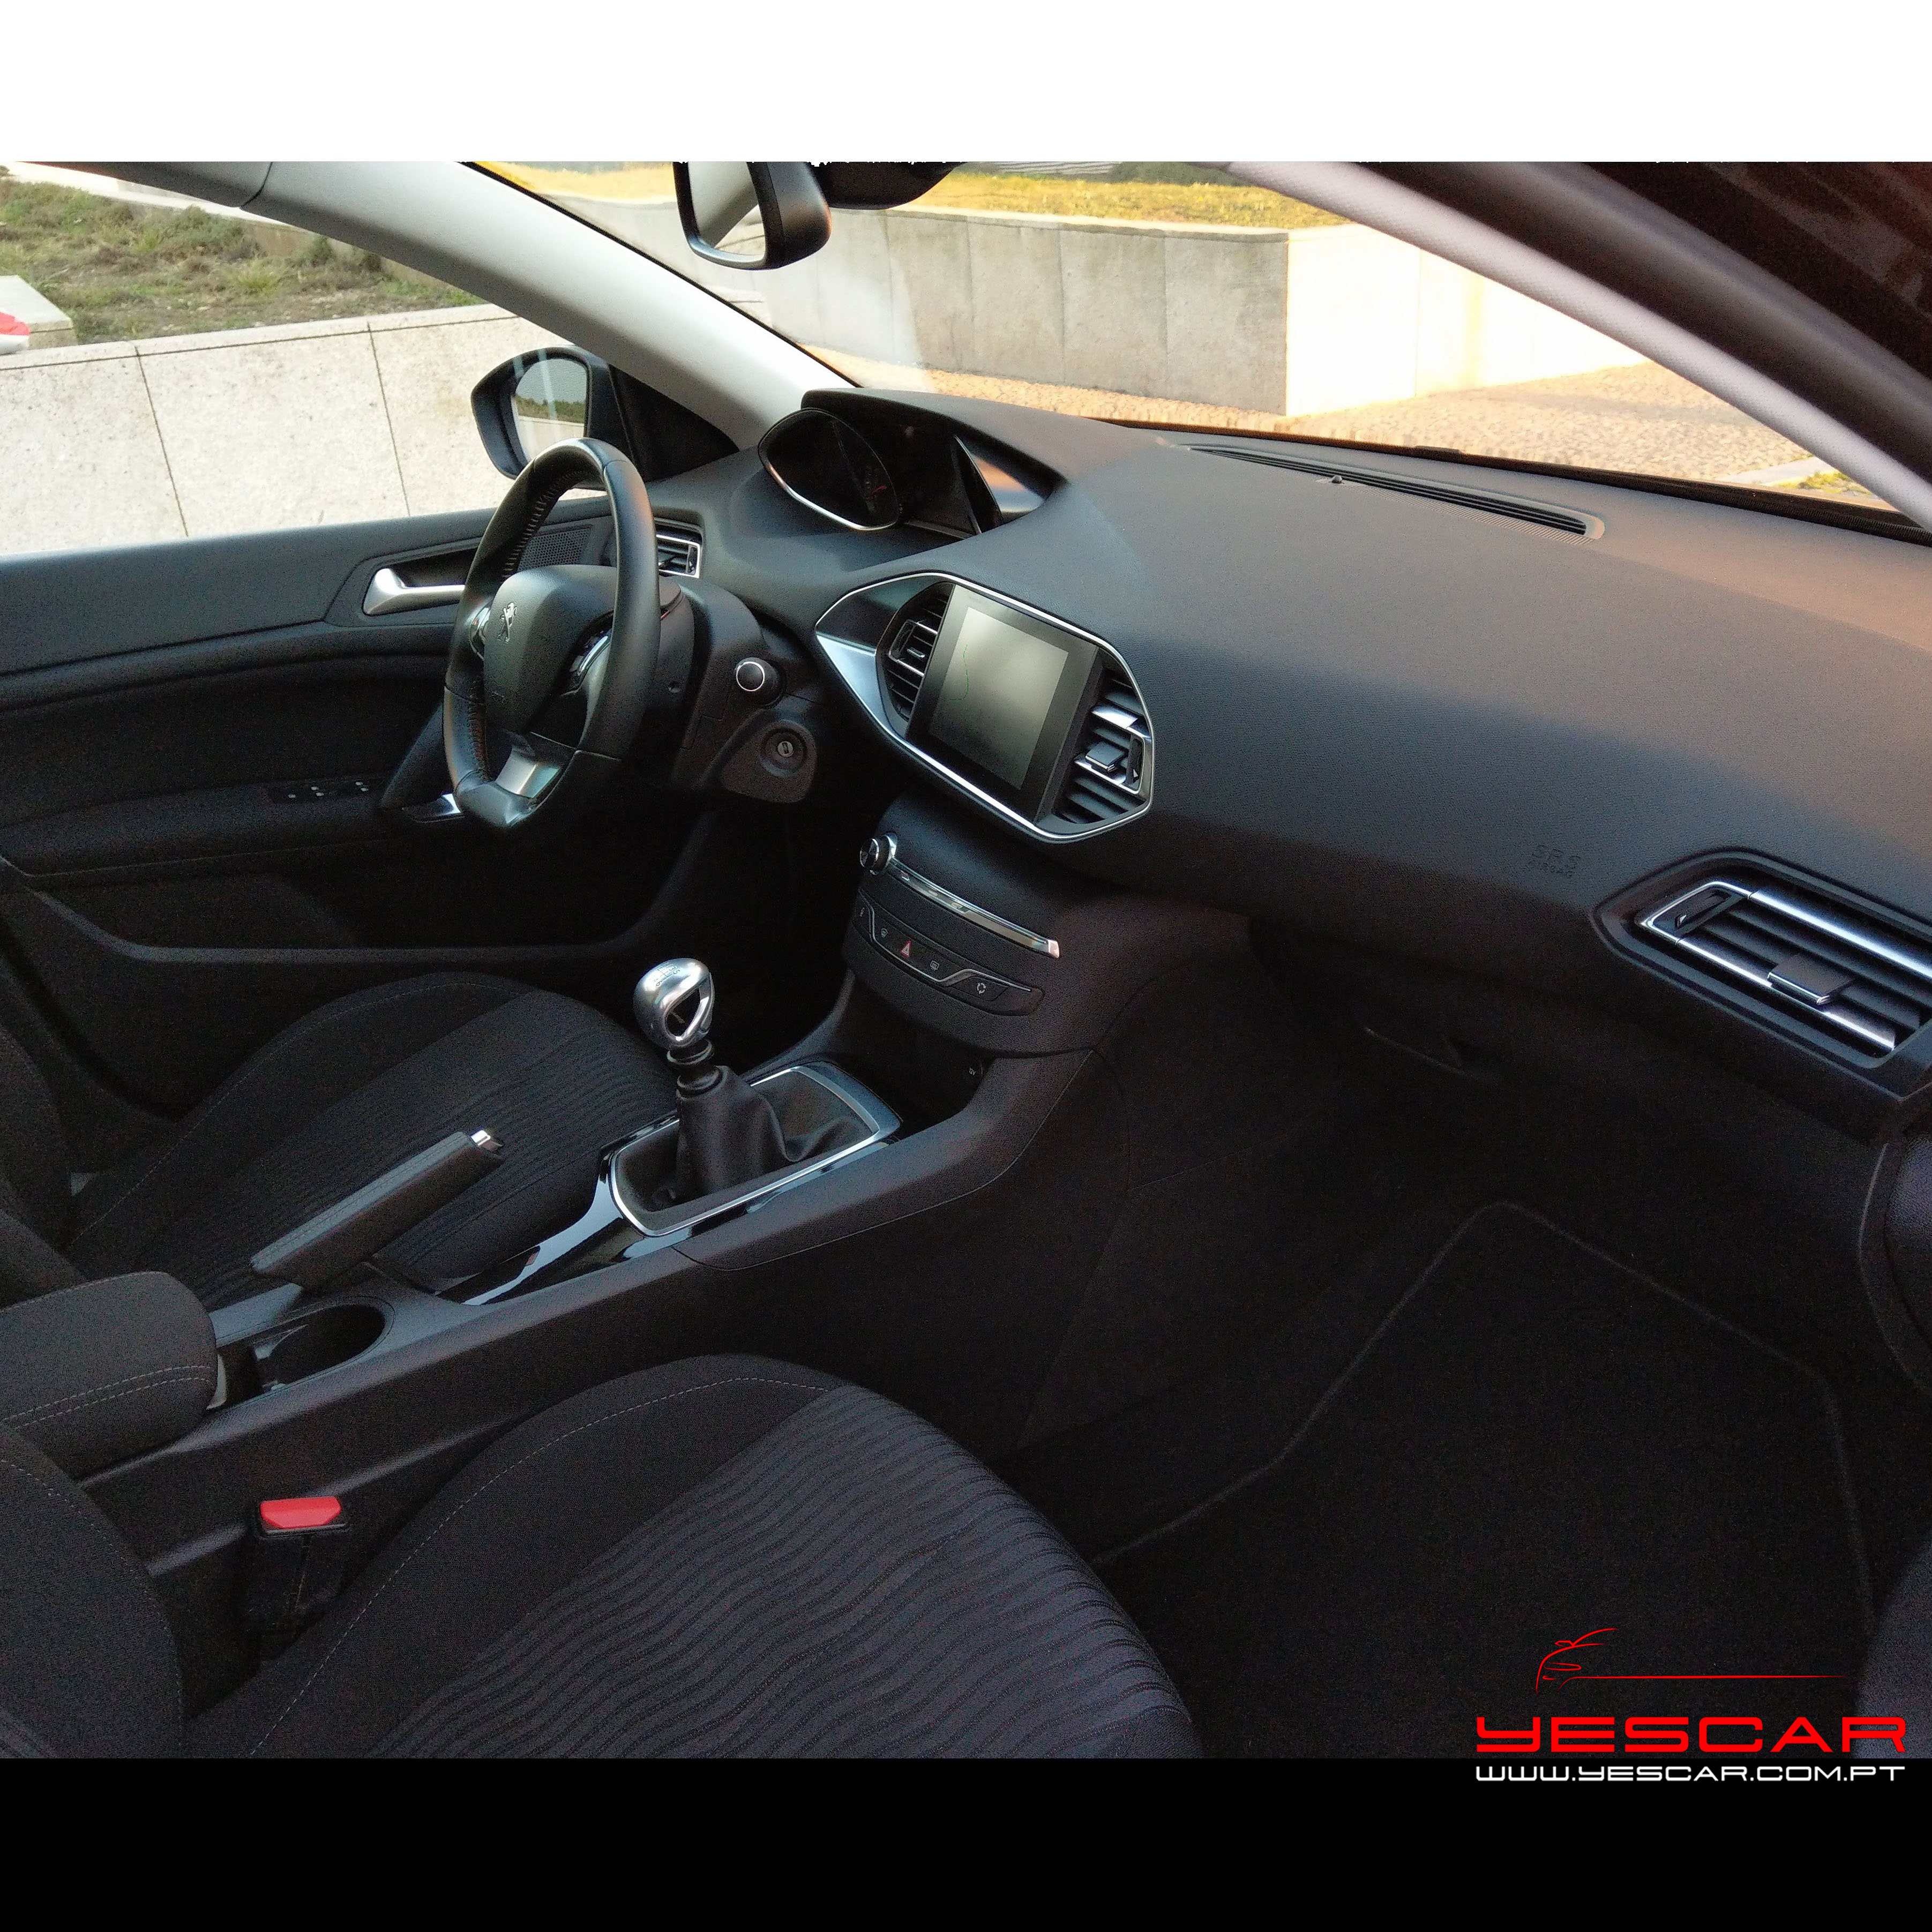 Peugeot_308SW_blueHDI_Yescar_automoveis (21)